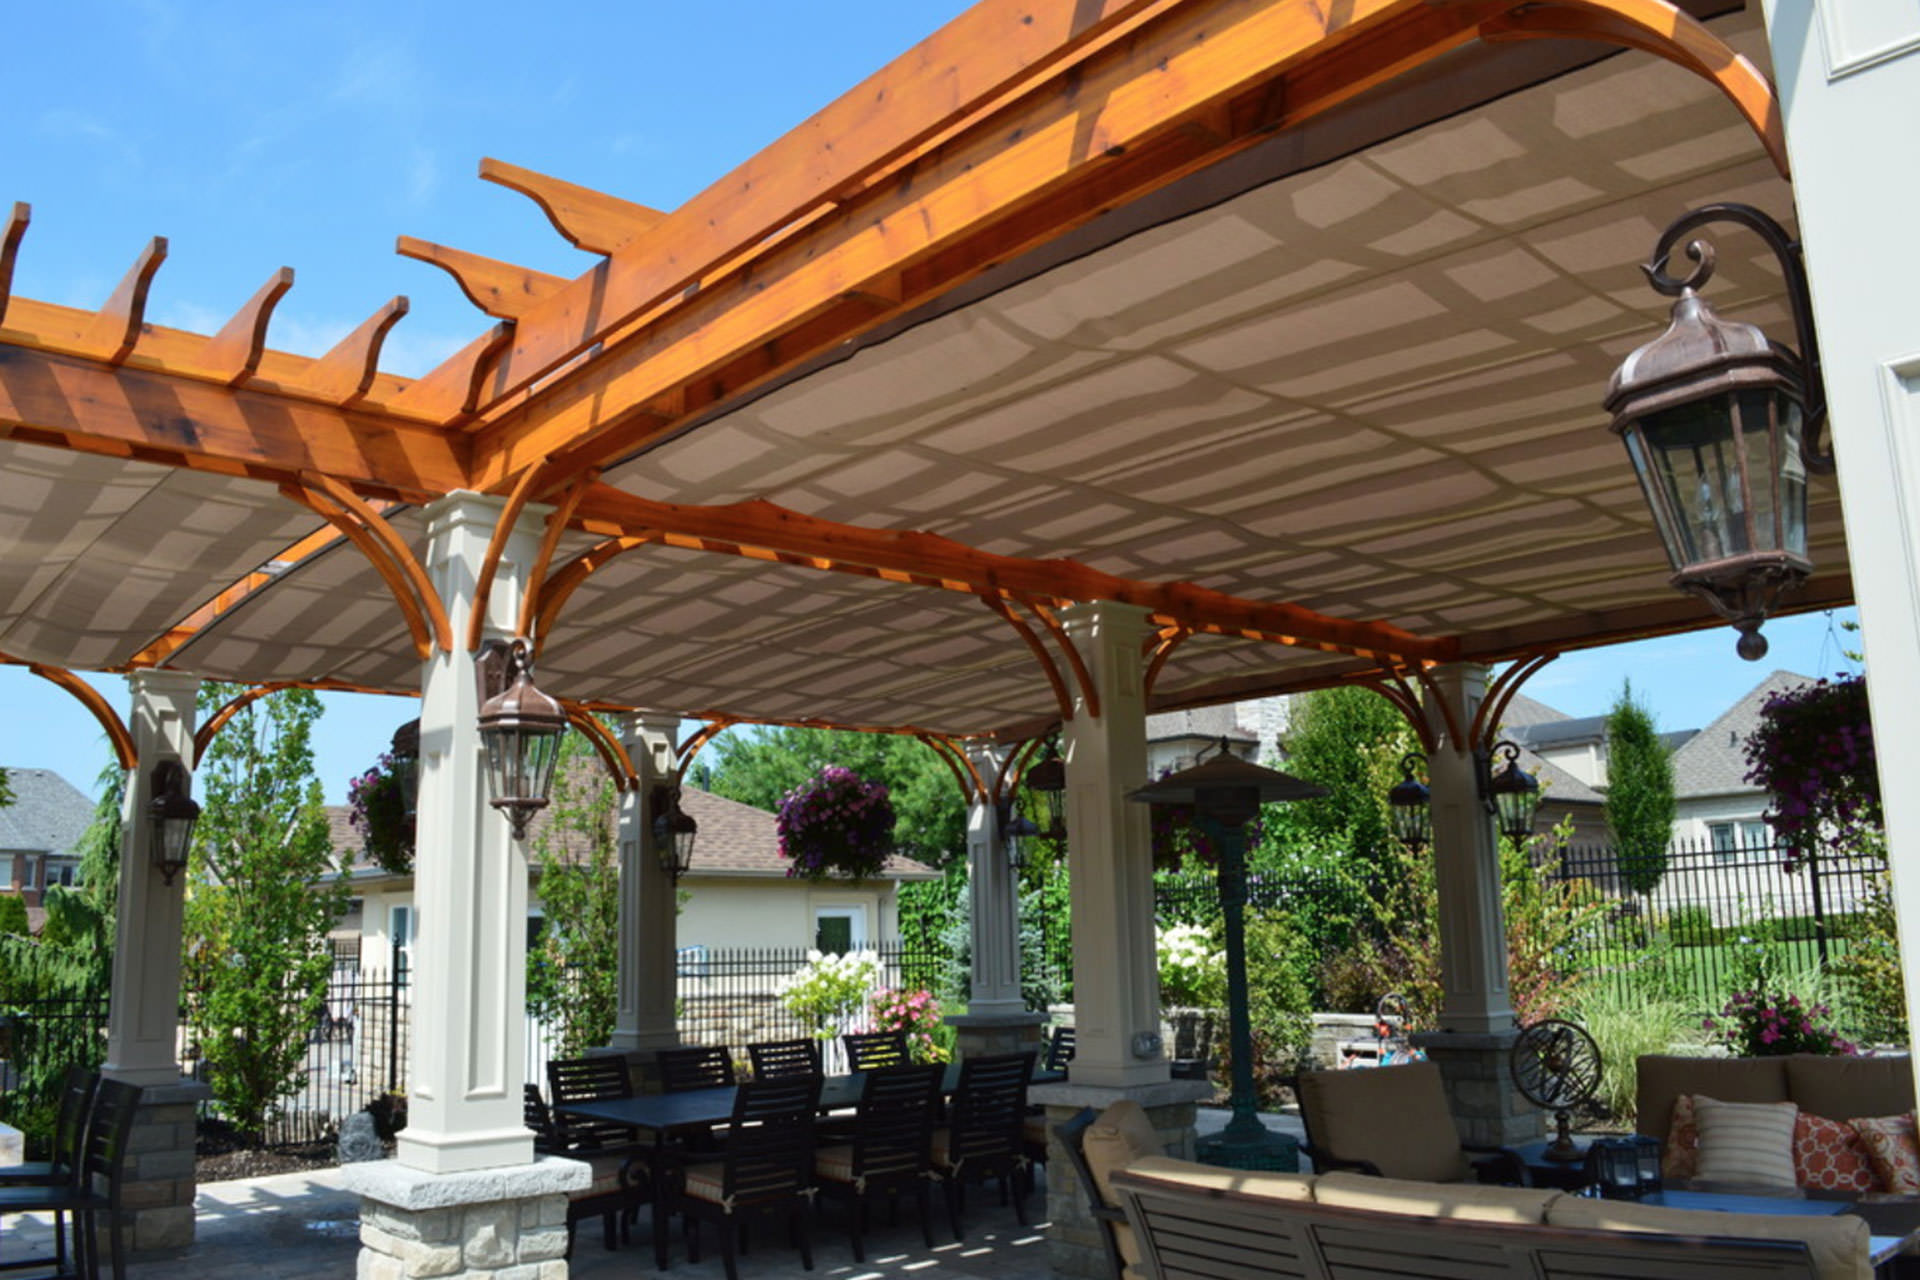 Choosing A Retractable Awning   U0026 39 Covering U0026 39  All The Options